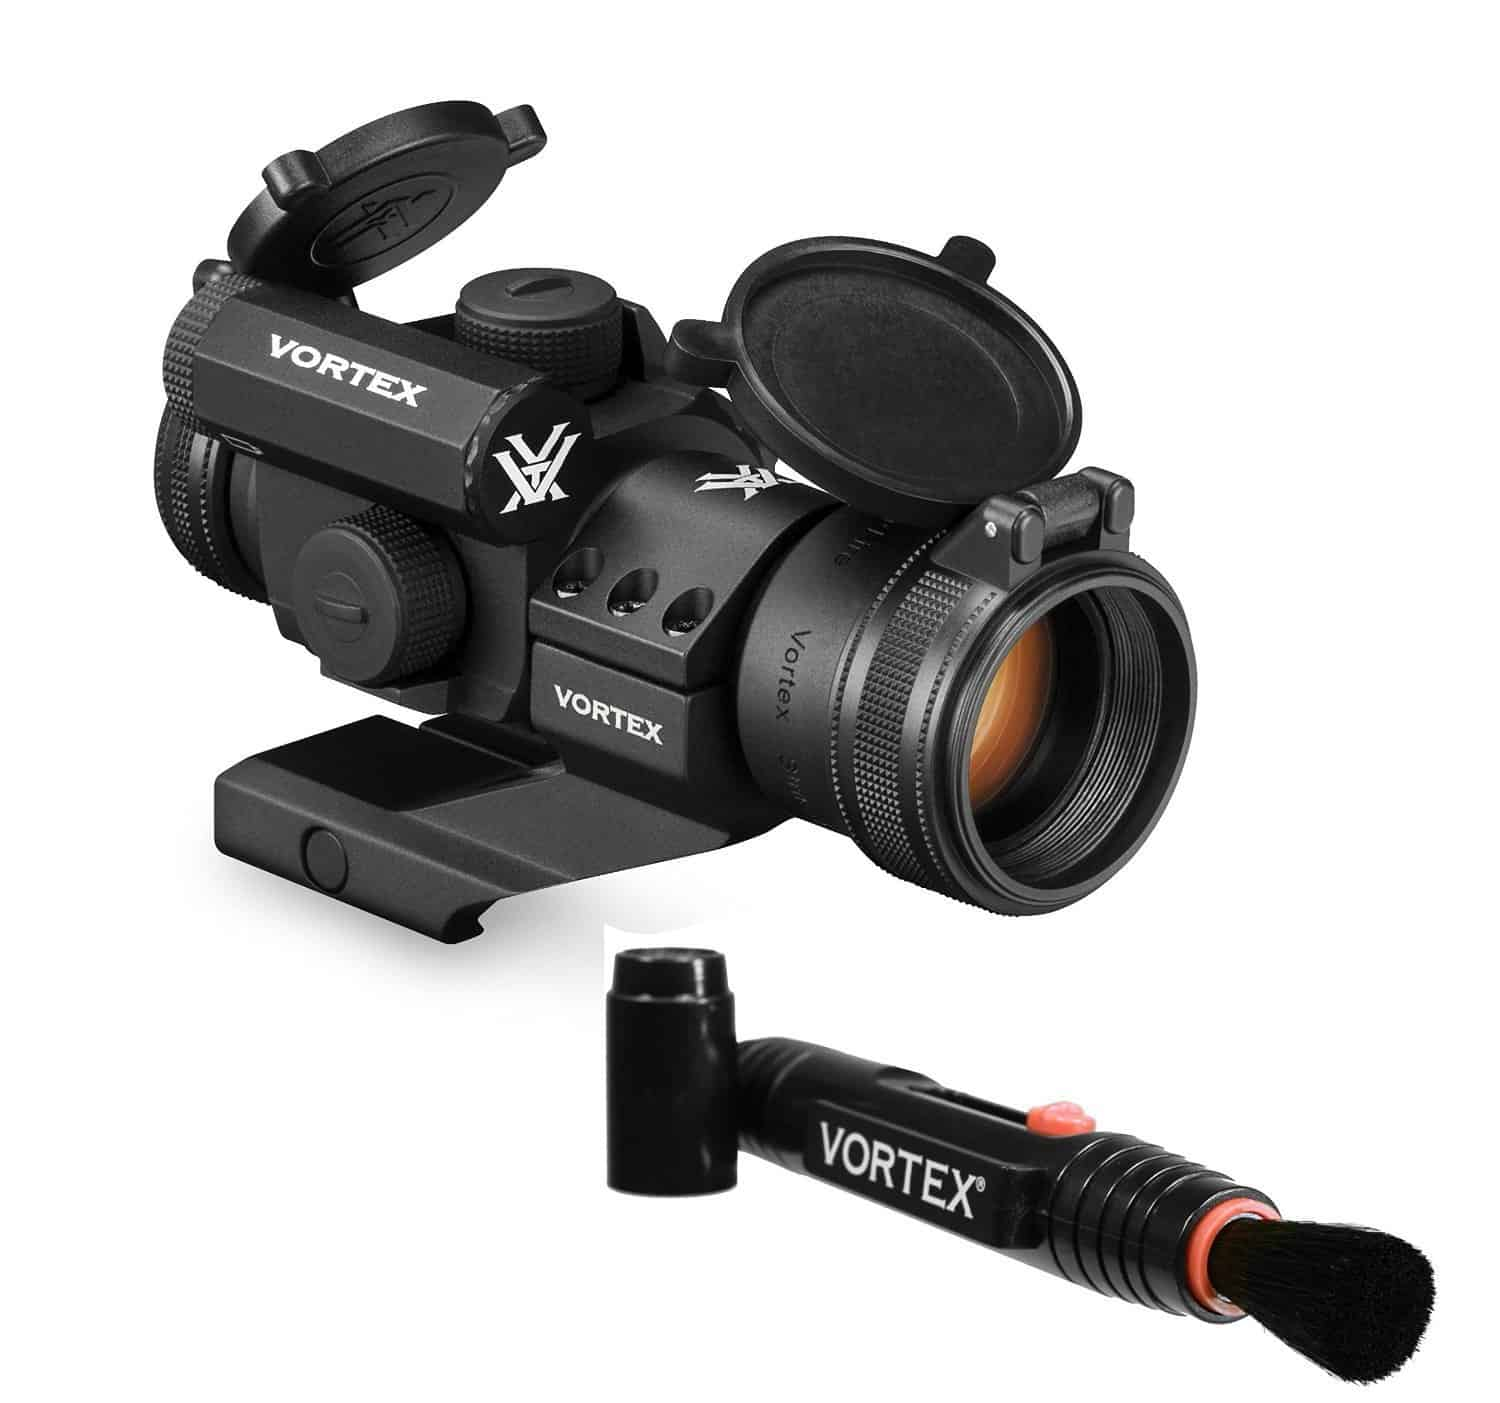 Vortex Optics StrikeFire 2 Rifle Scope